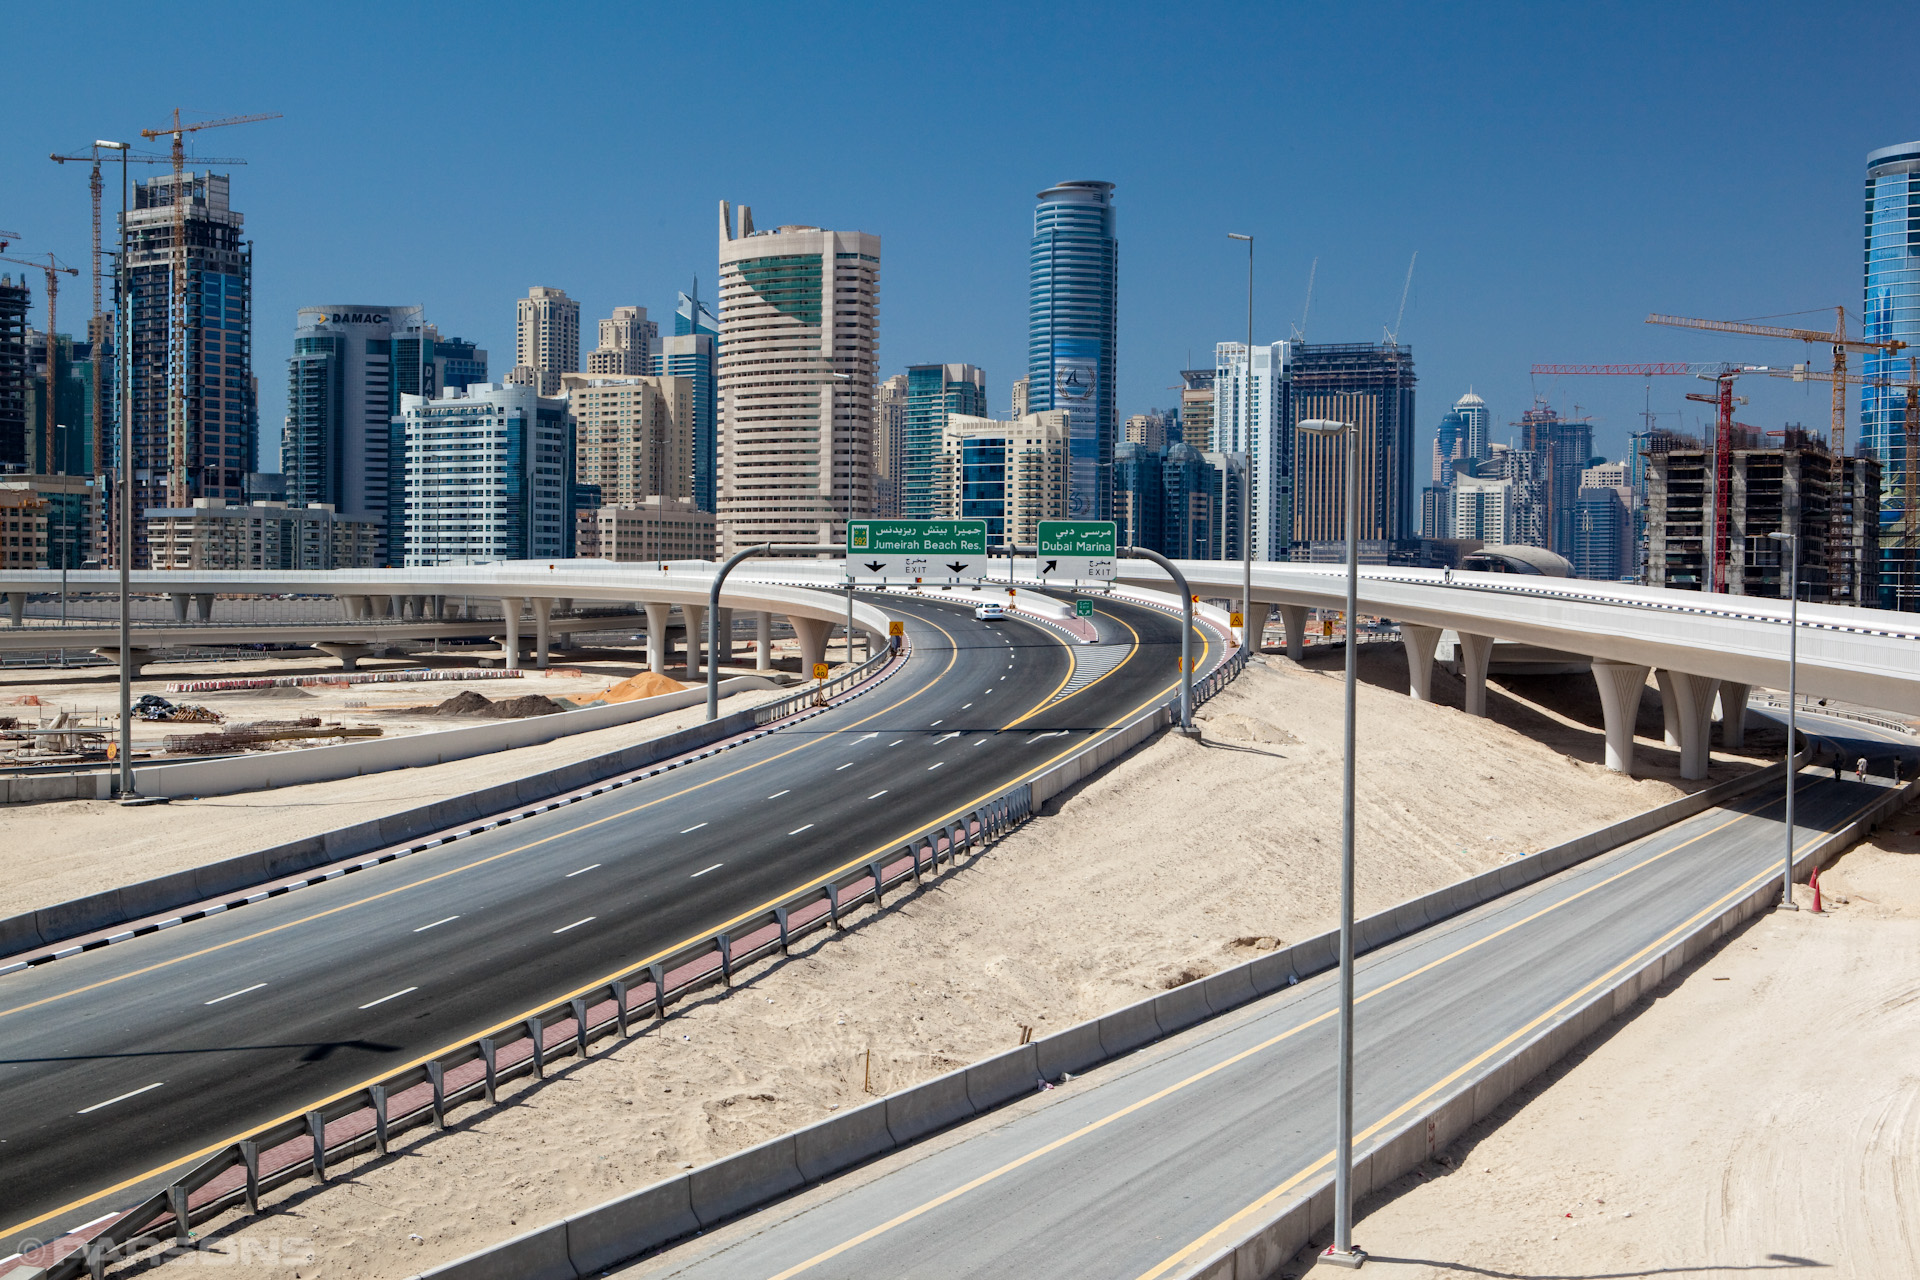 Civil-Engineering-Dubai-Sheik-Zayed-Skyline-UAE-1.JPG